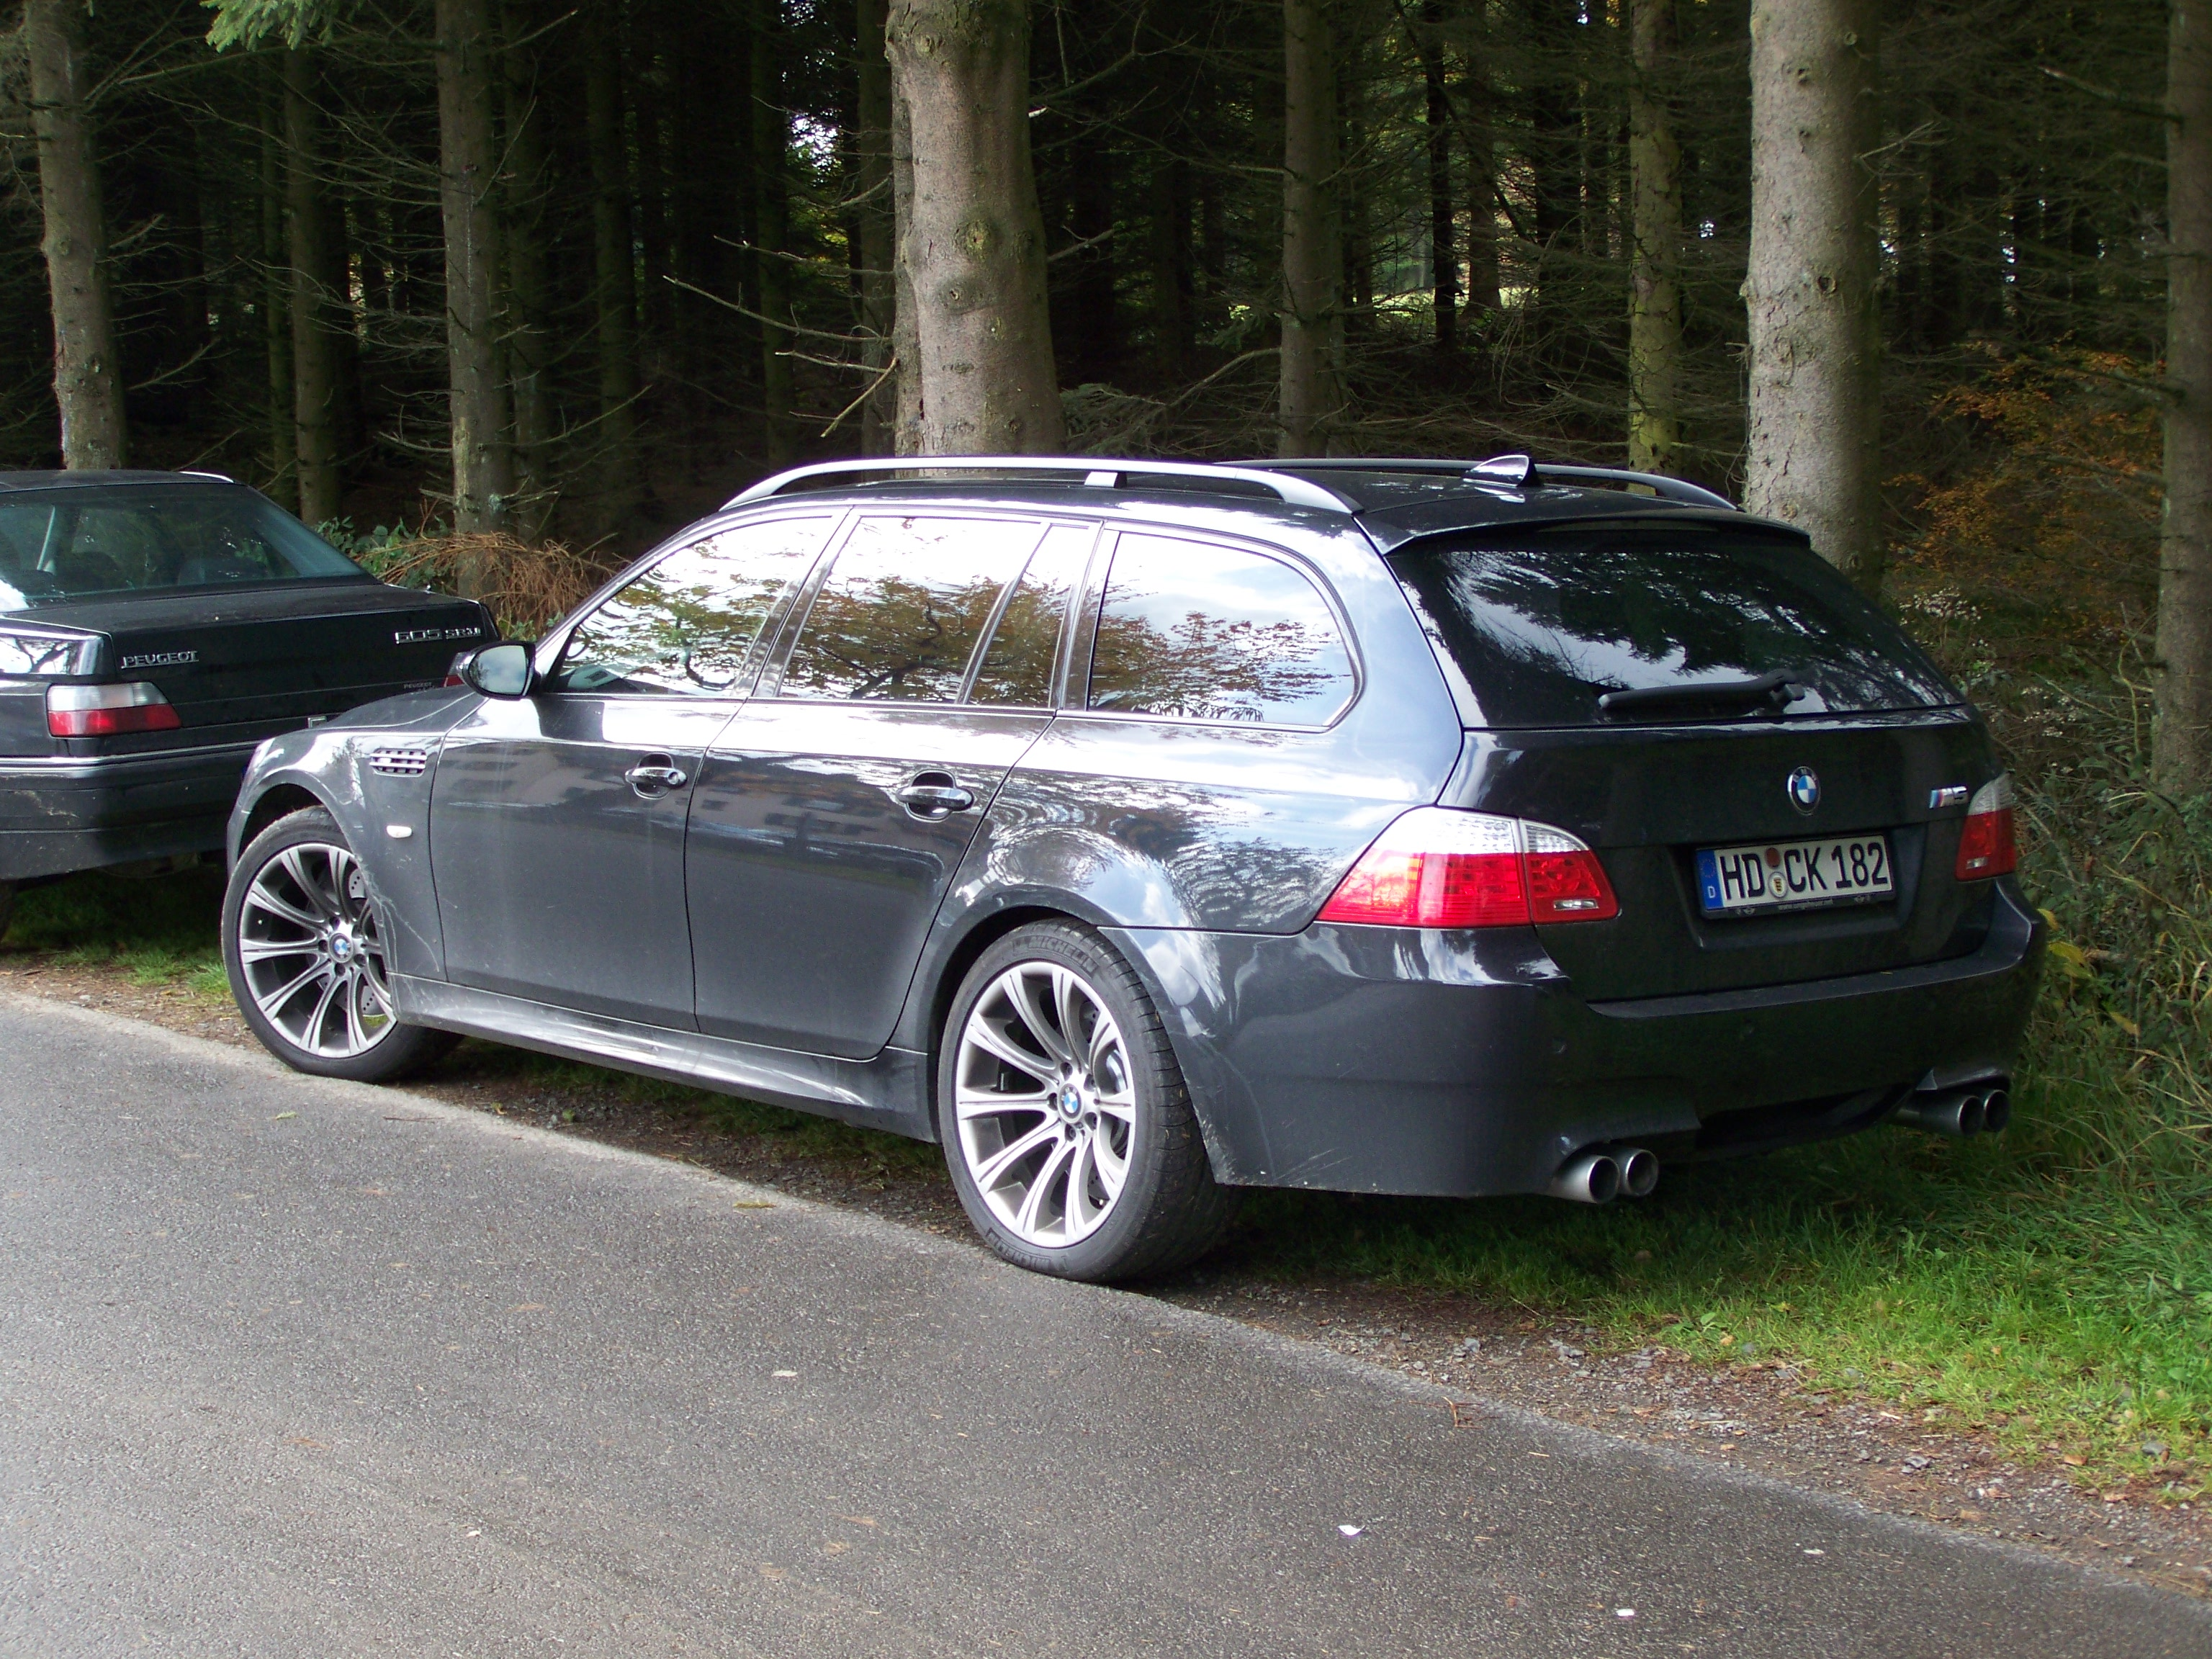 file black bmw m5 touring e61 rl wikimedia commons. Black Bedroom Furniture Sets. Home Design Ideas